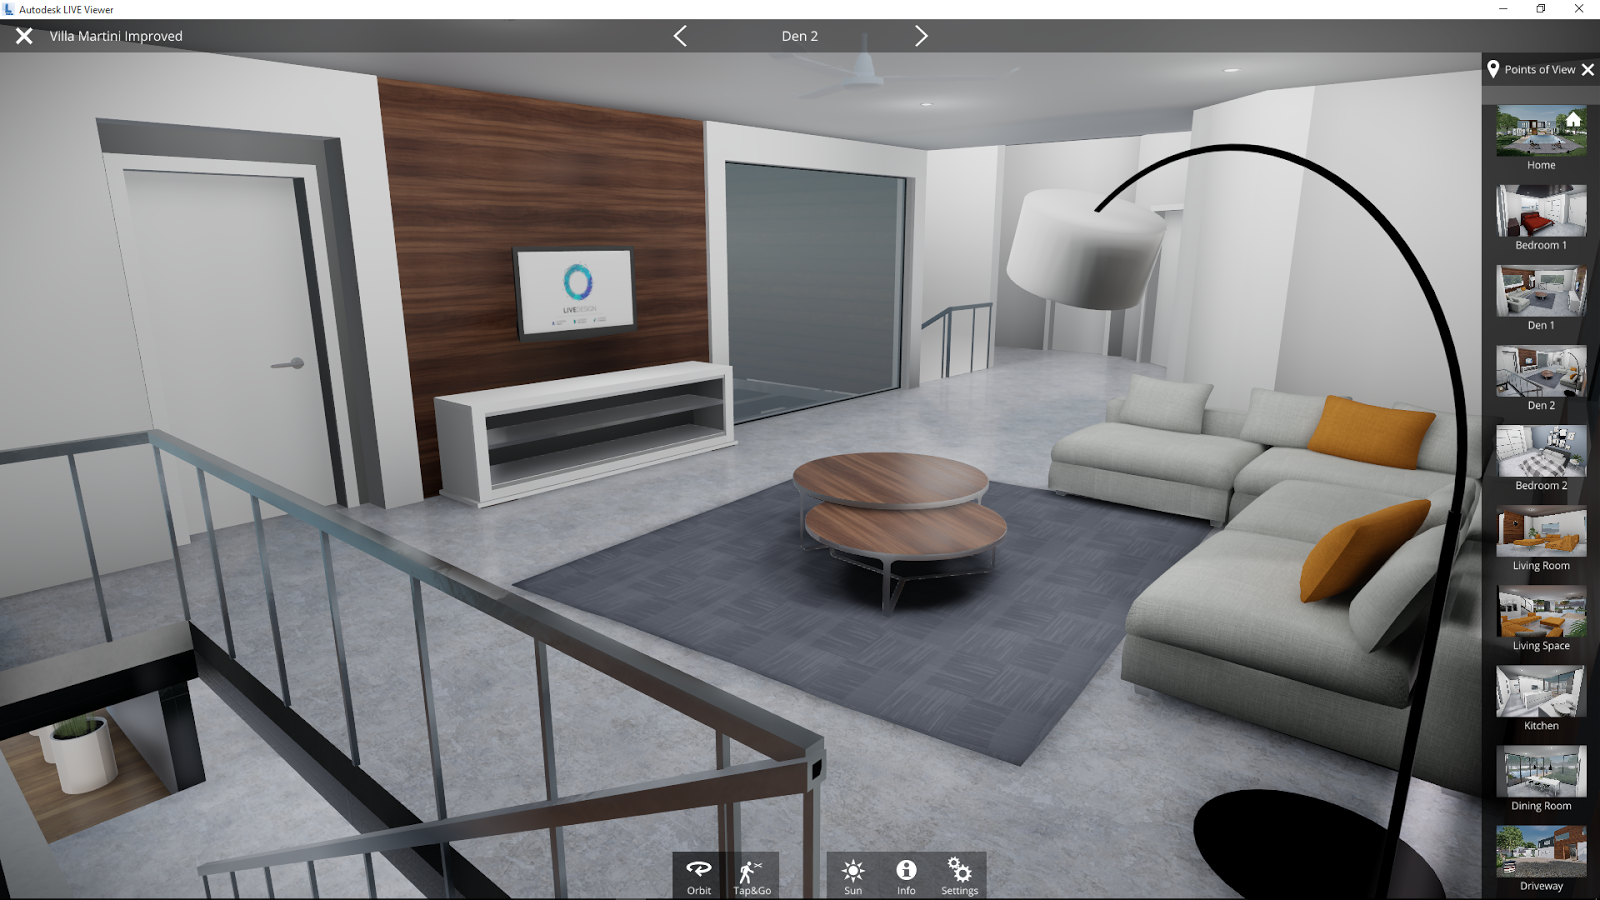 Revit add ons autodesk live viewer step inside your design for Autodesk online home design